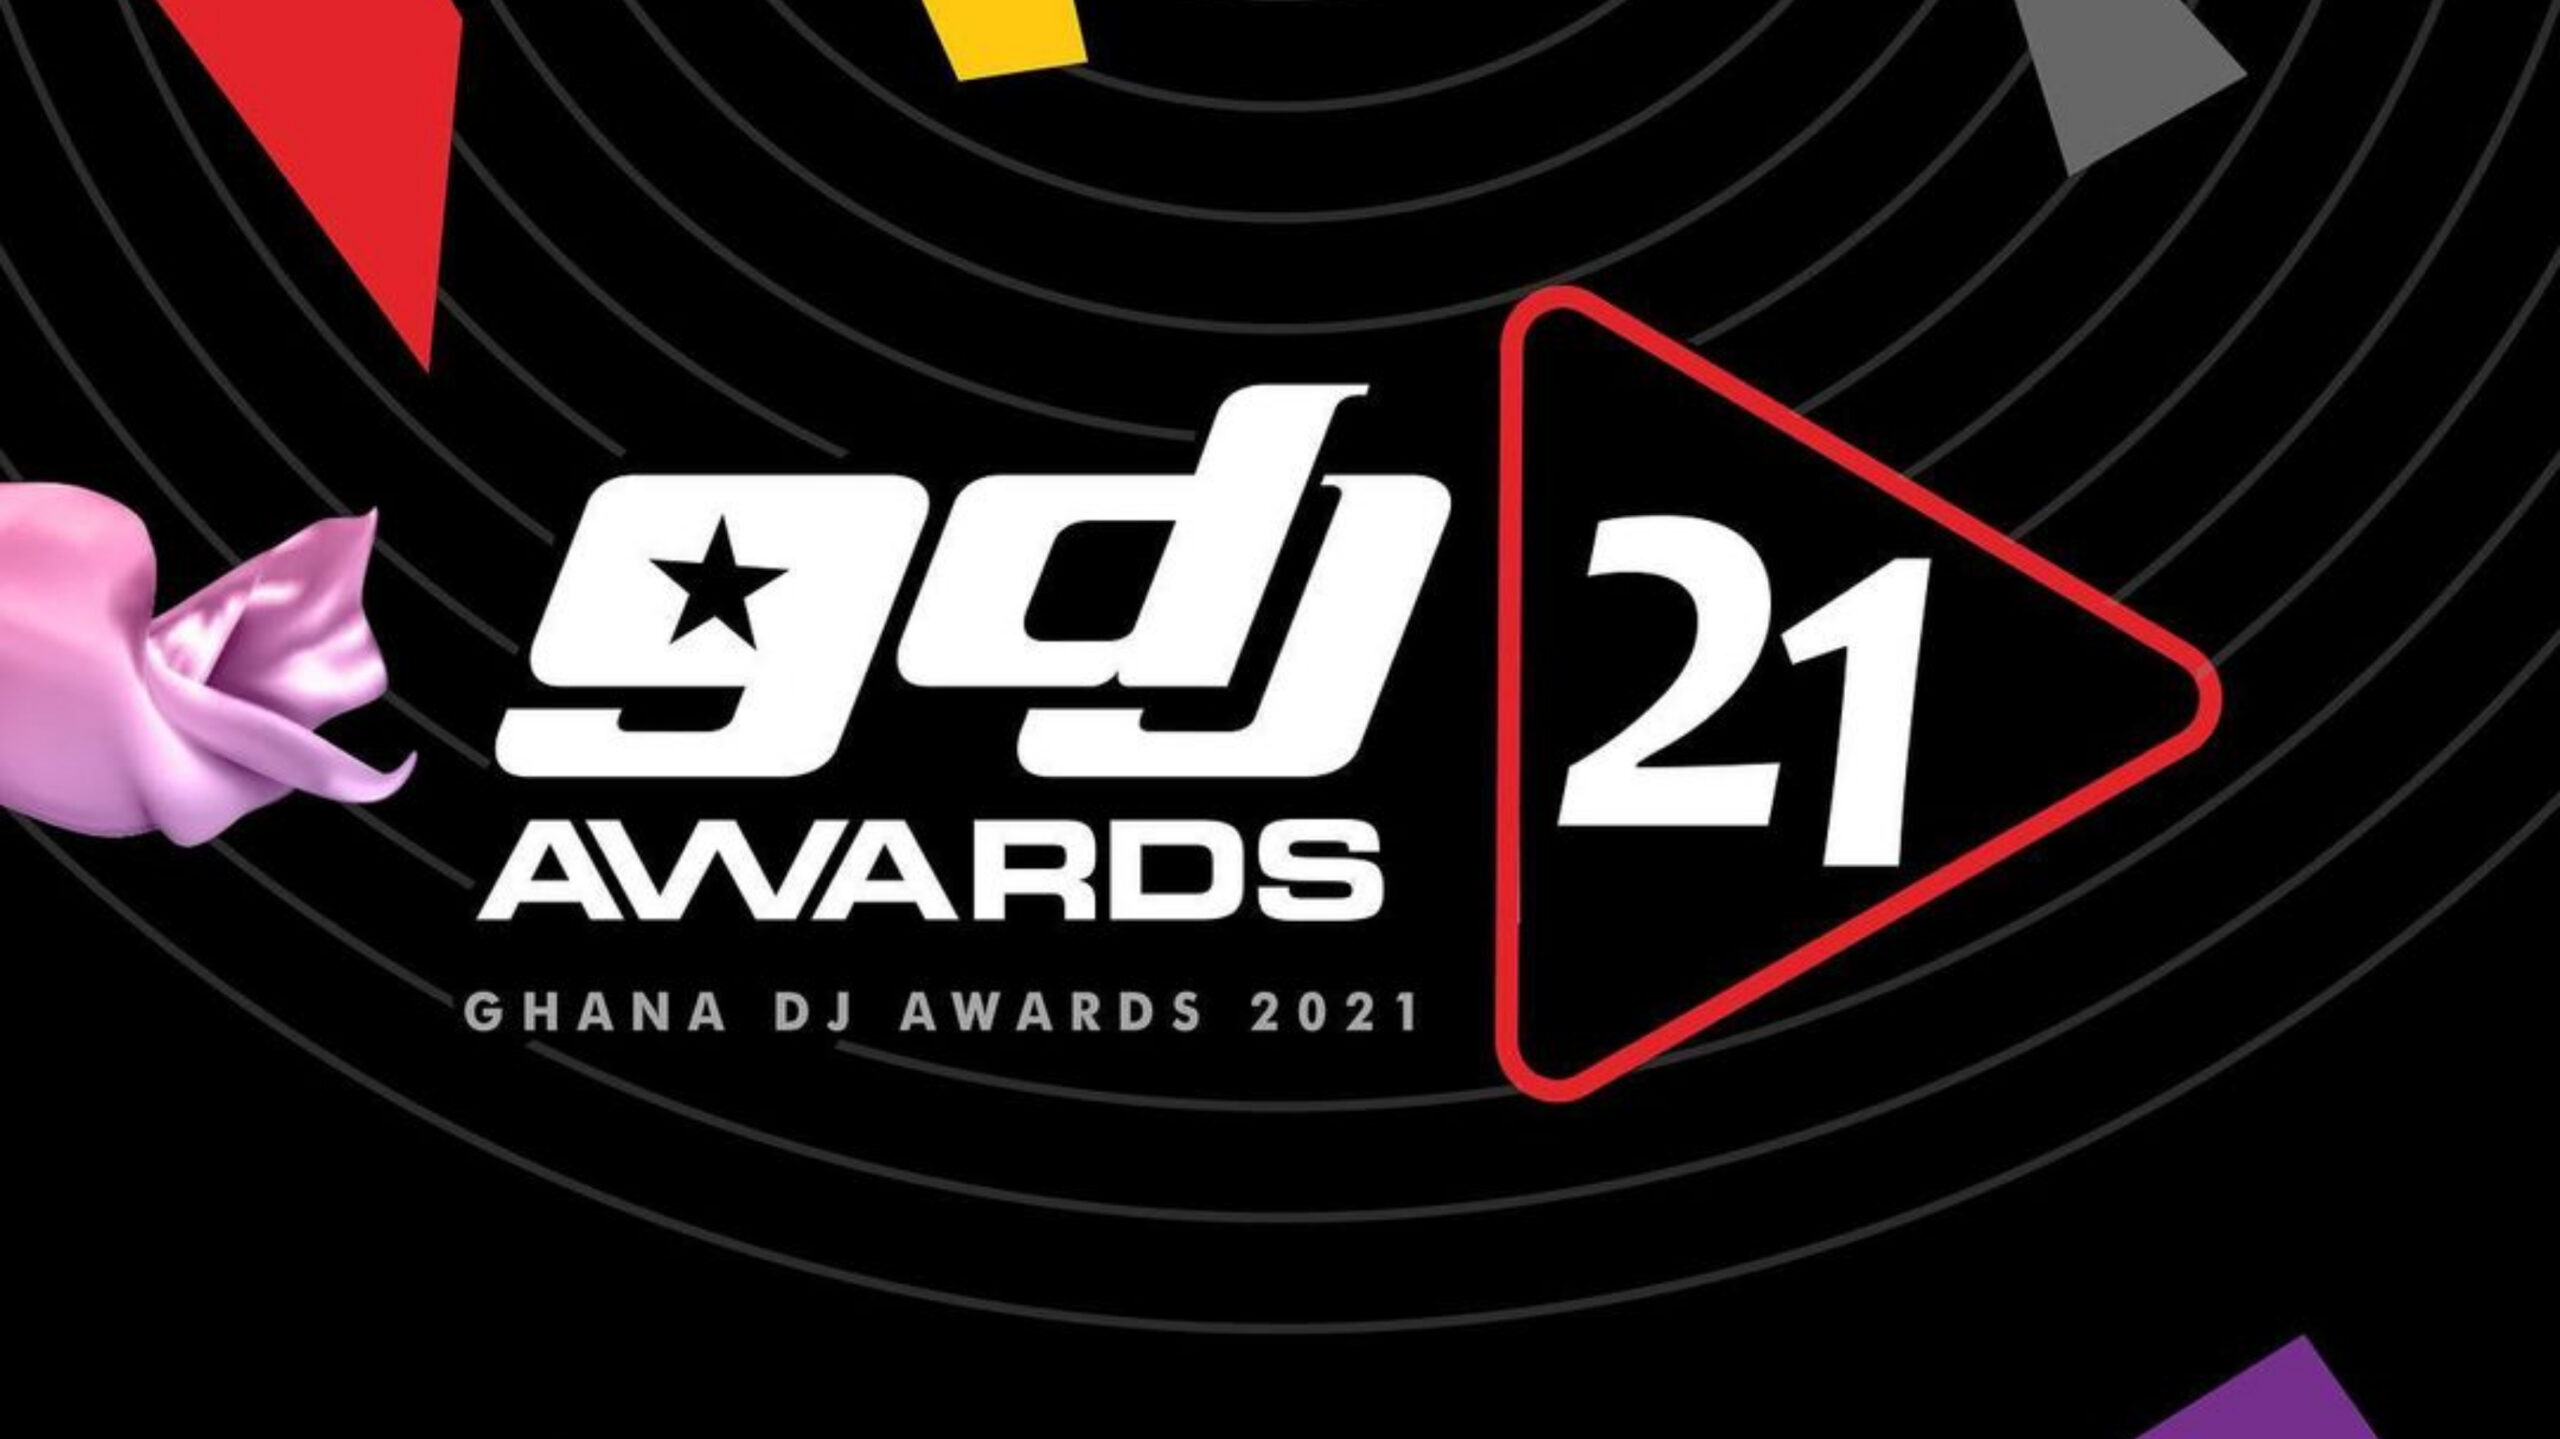 Ghana DJ Awards Public Nominations Open From August 30